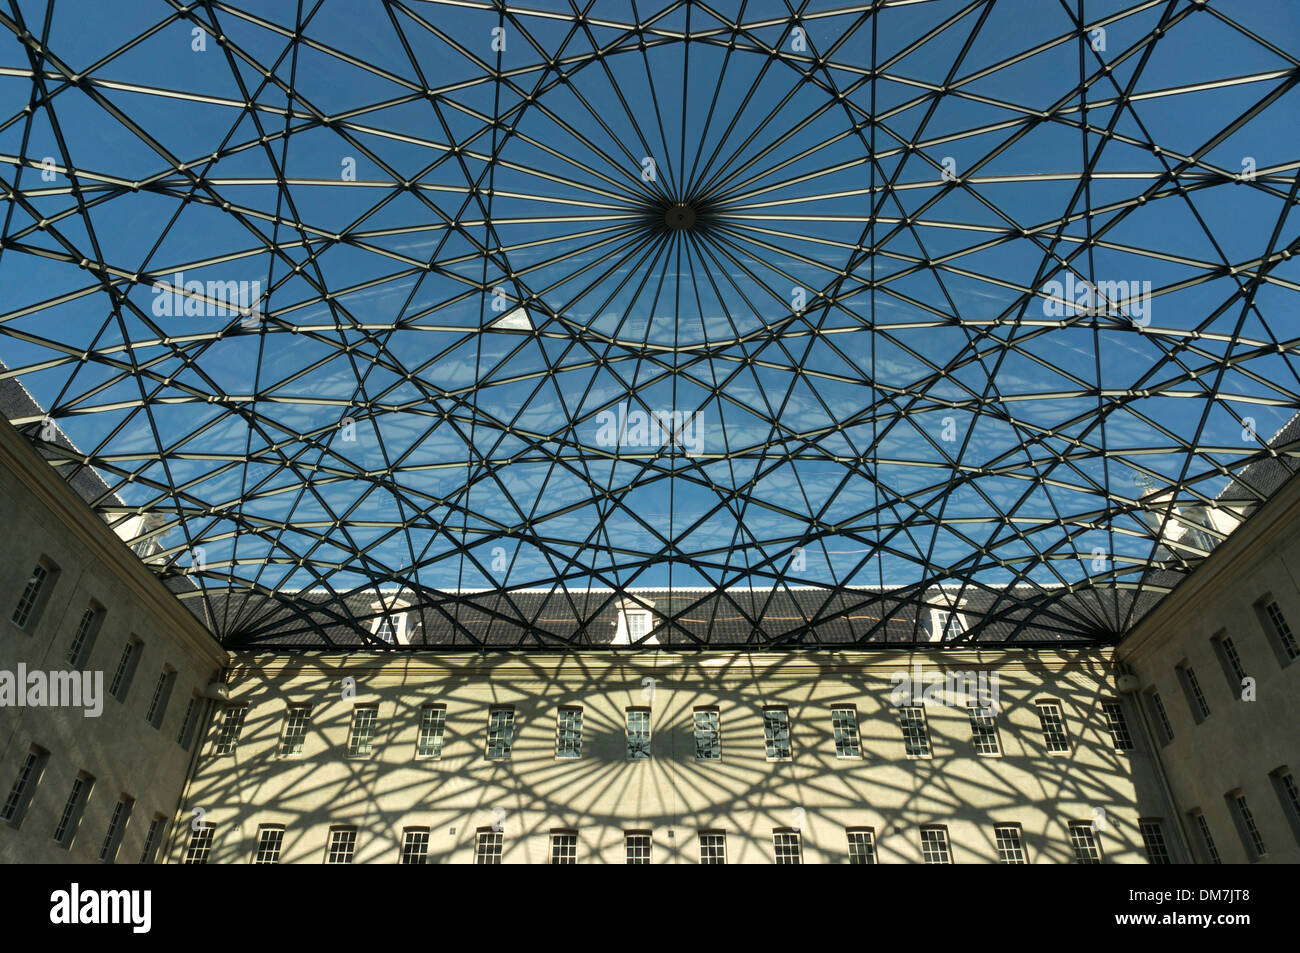 Glass roof designed as a compass card casts geometrical shadows on courtyard facade of the naval museum in Amsterdam - Stock Image